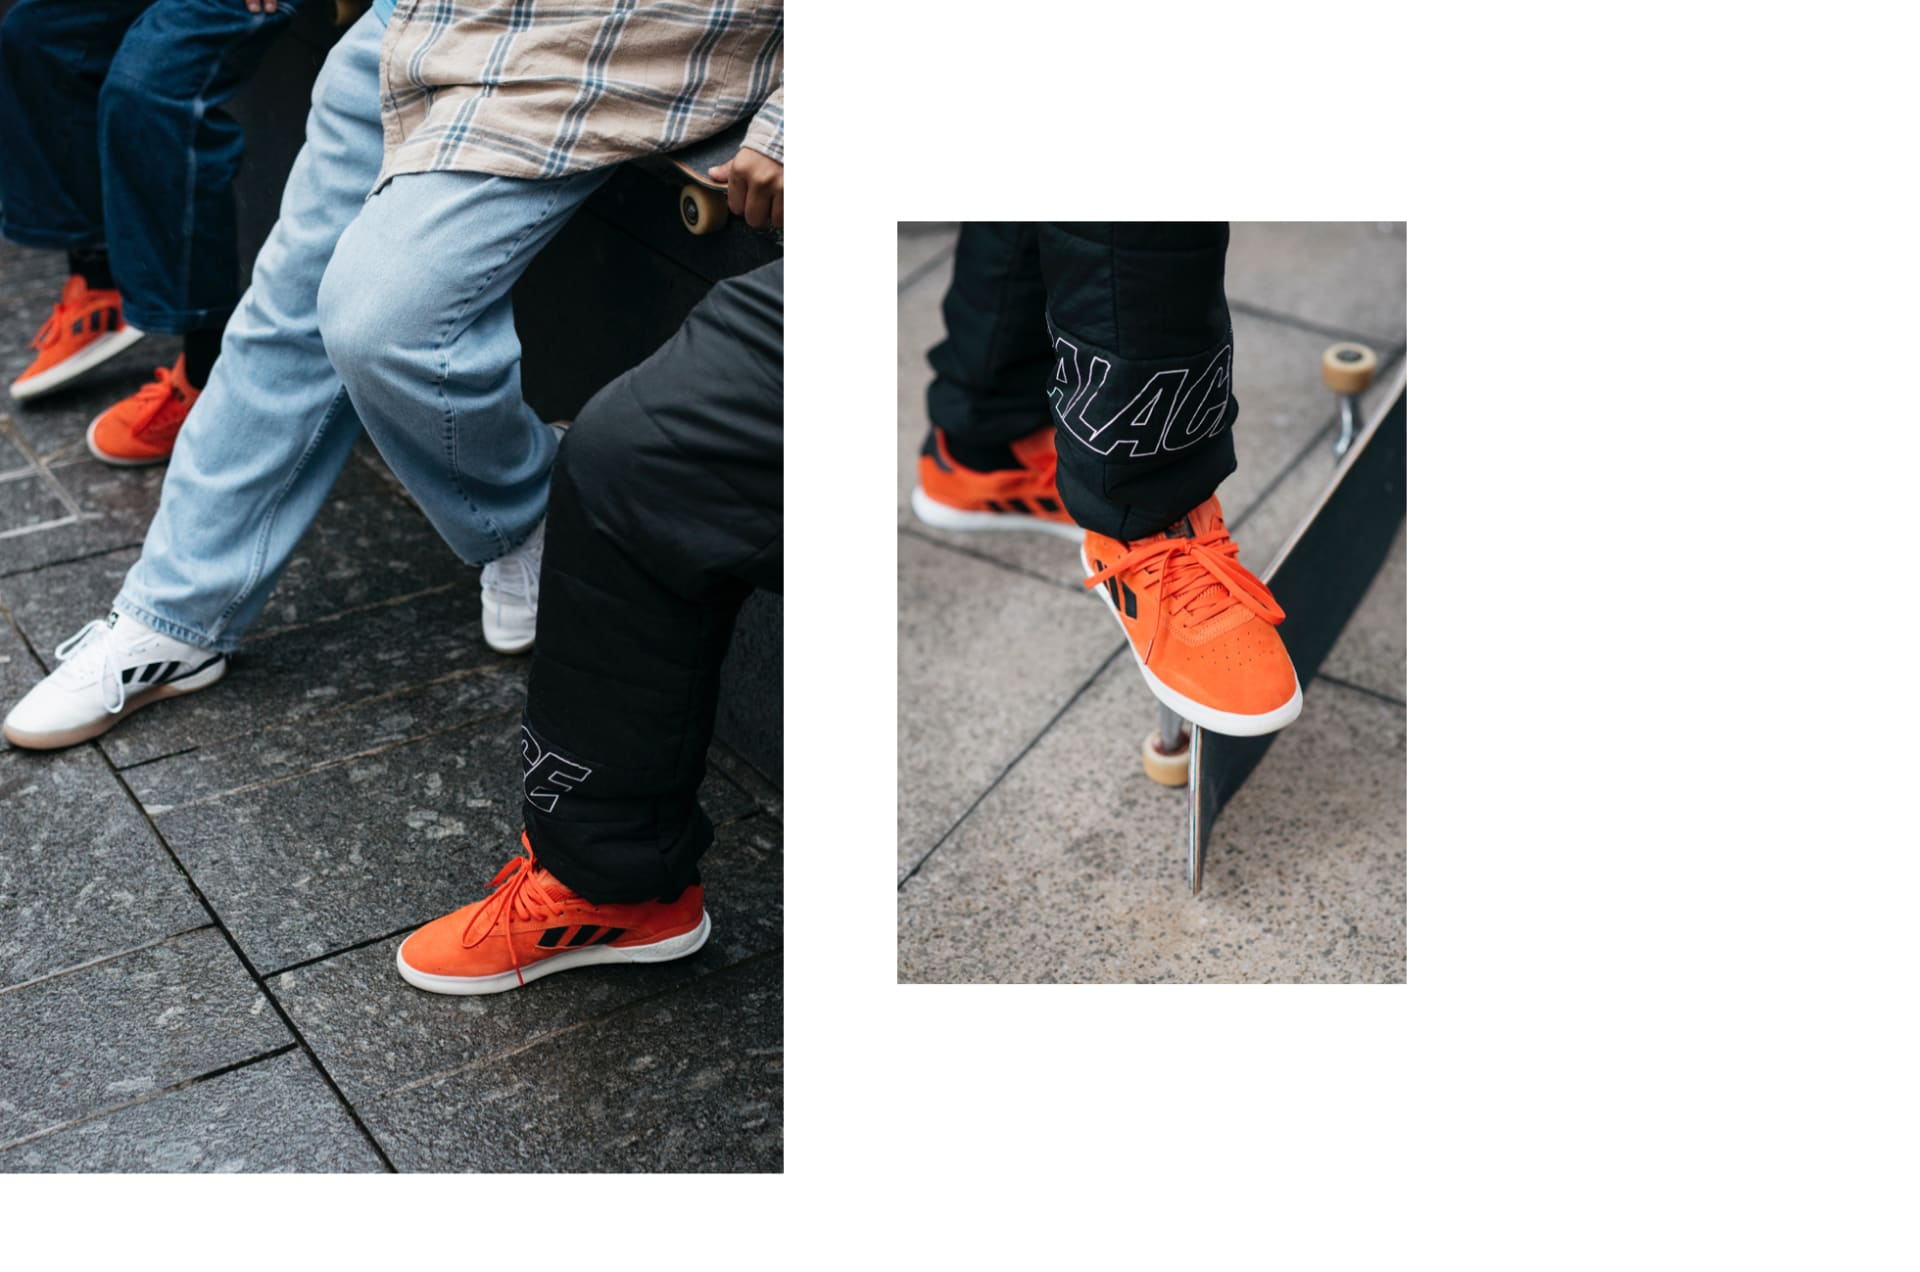 adidas 3st.004 - Boys in London - 6